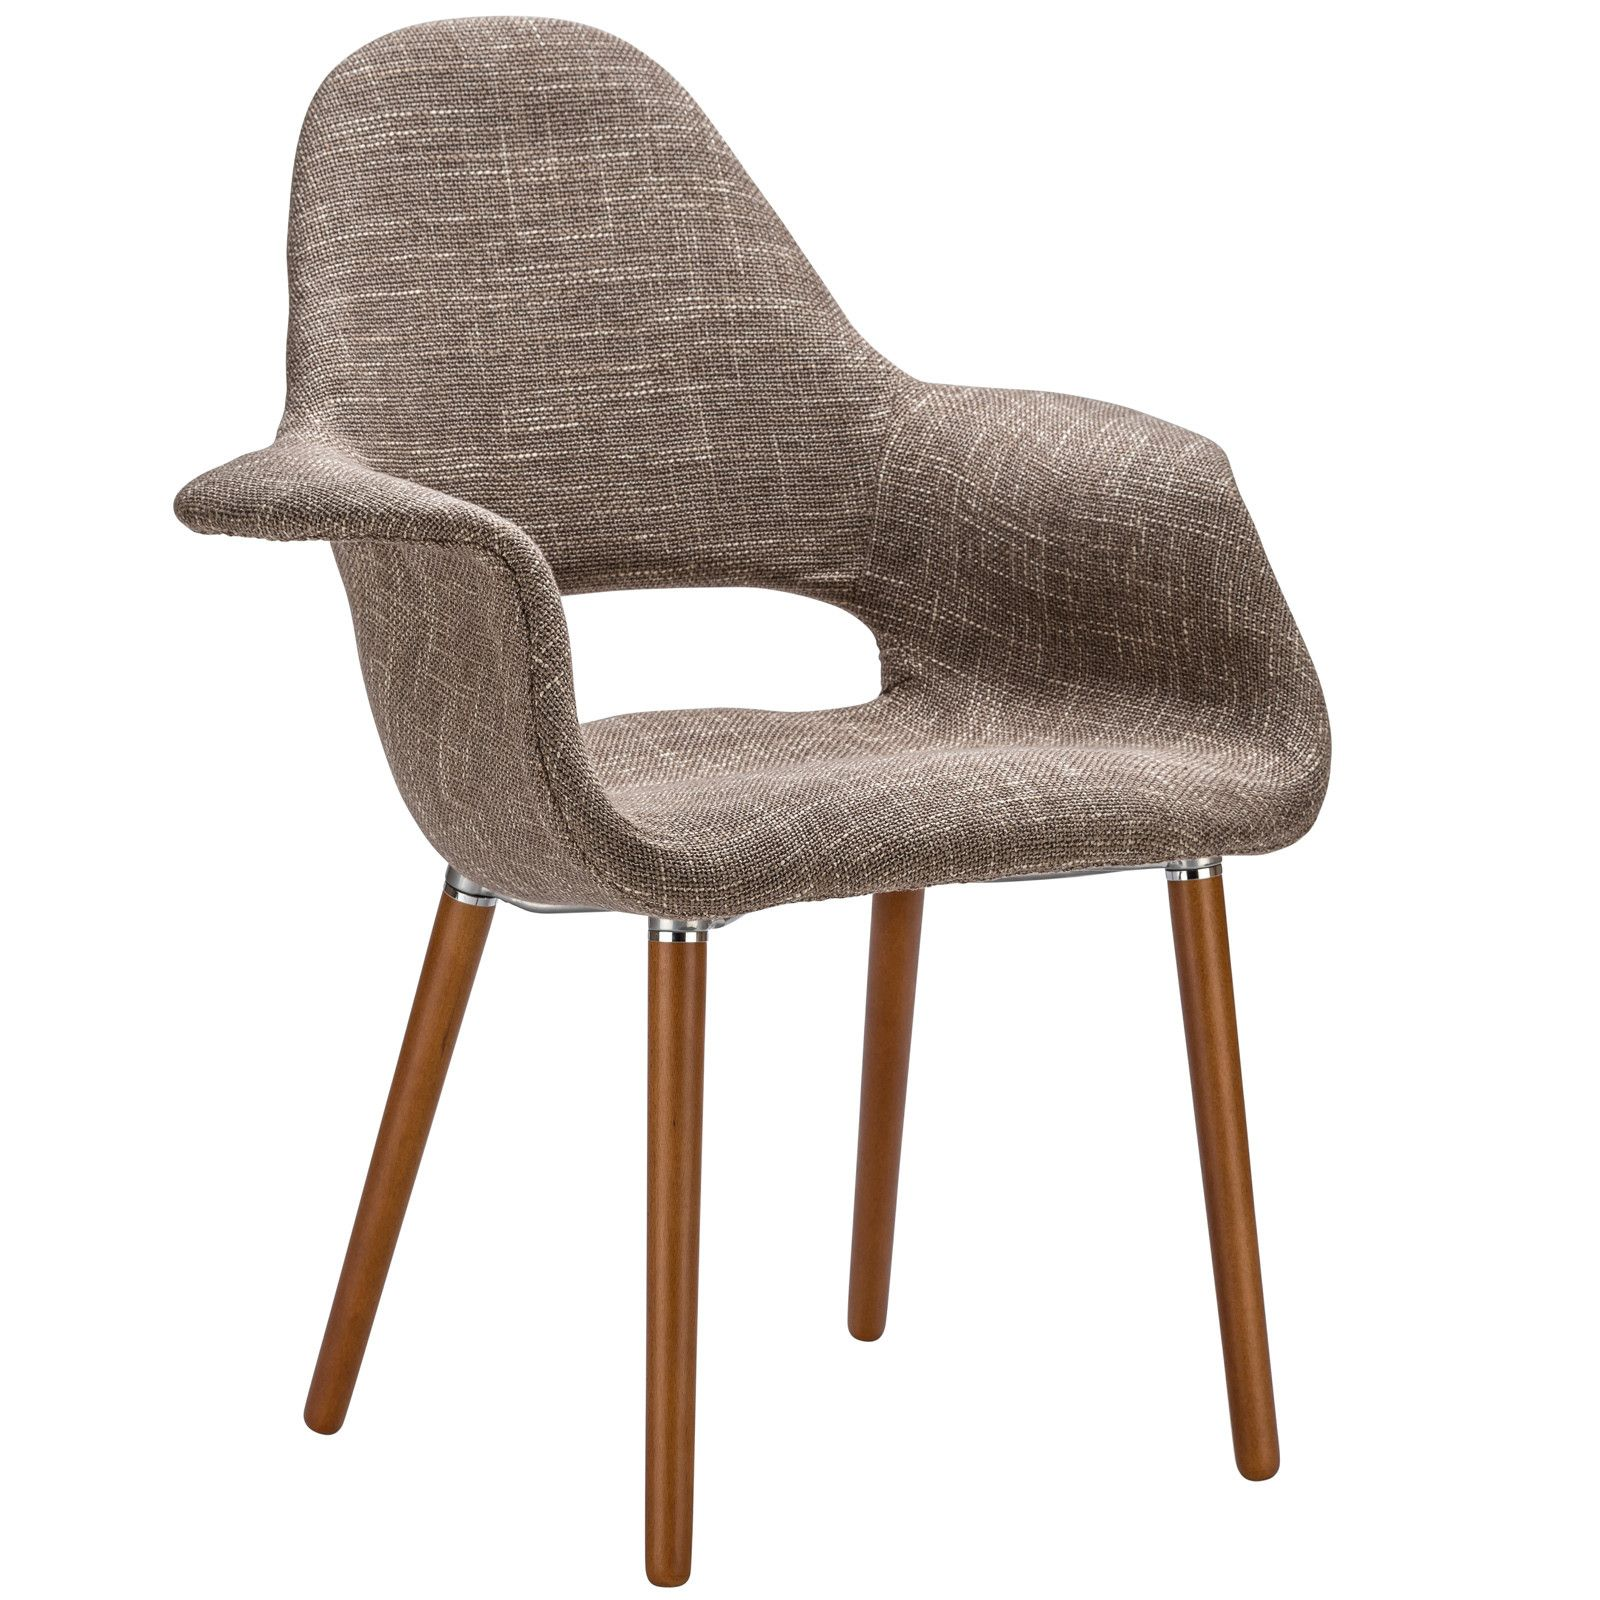 Customer image zoomed chaircomedores chair comedores pinterest